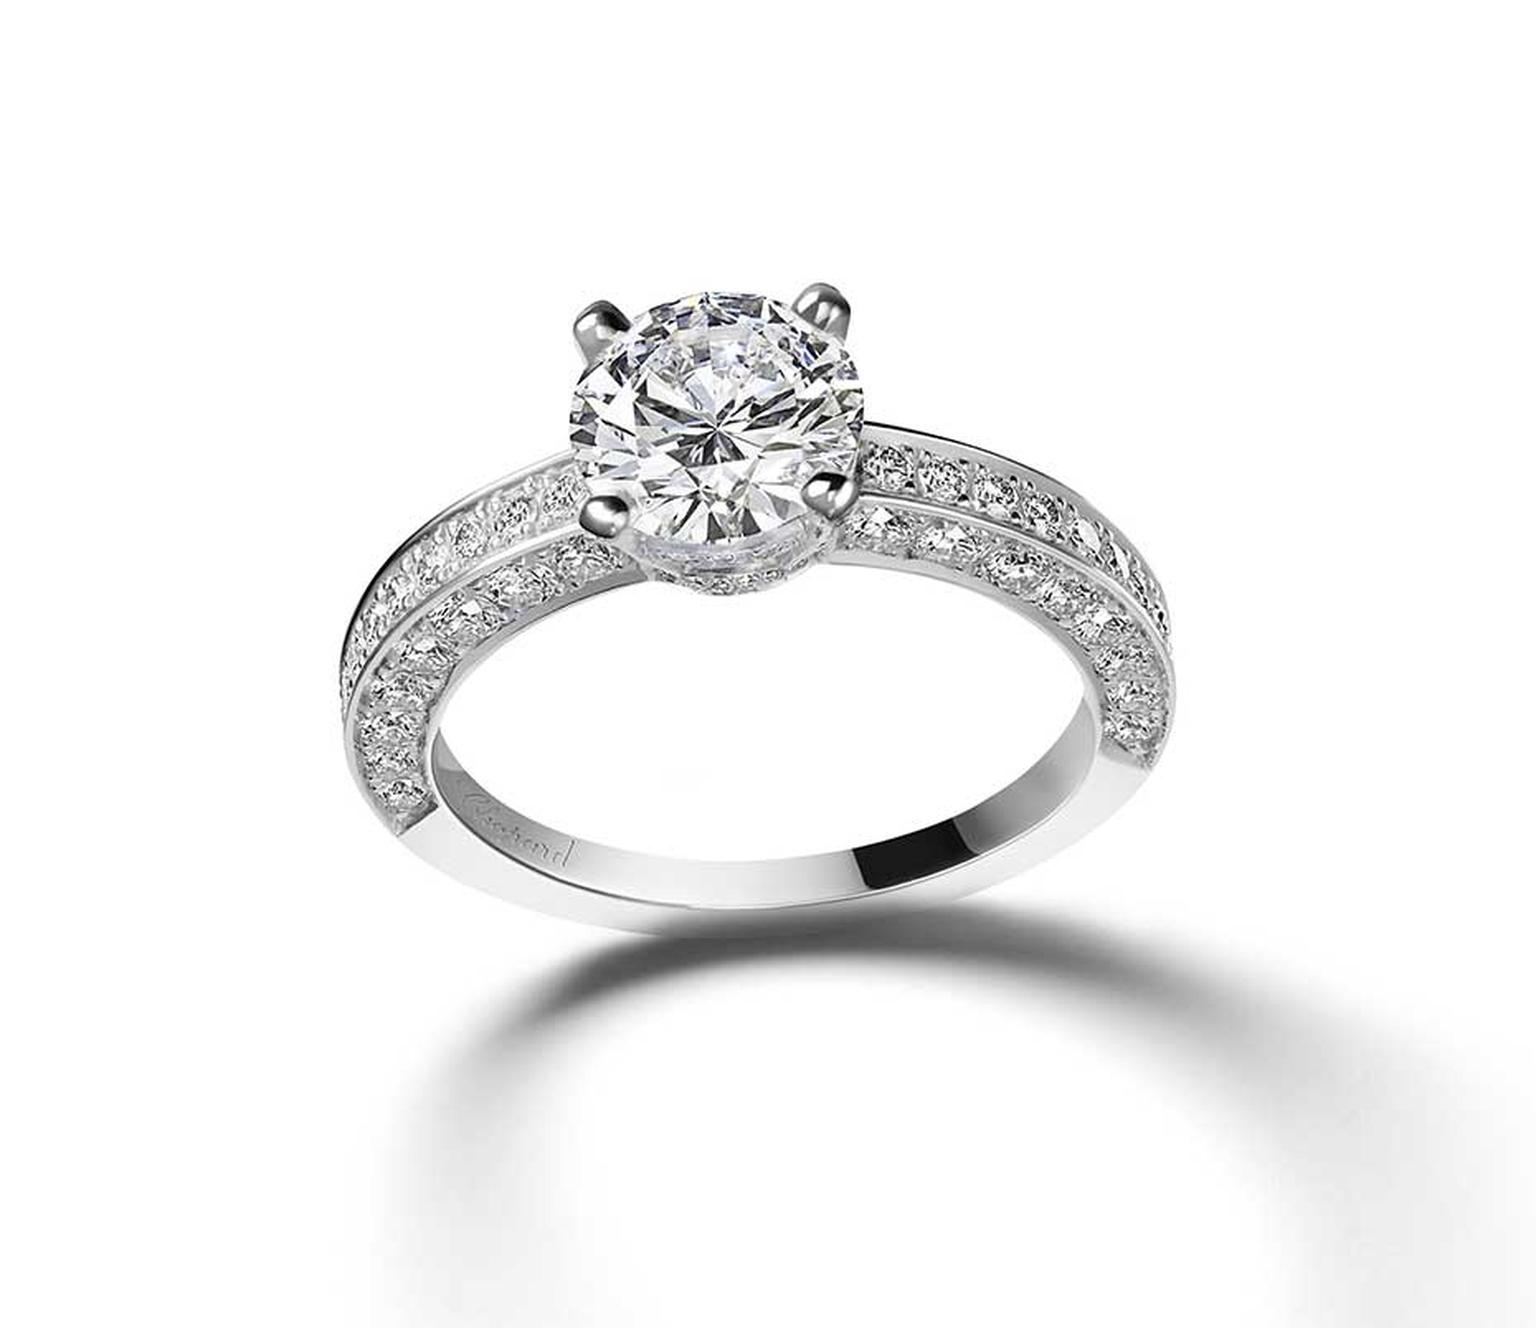 Chopard diamond engagement ring.